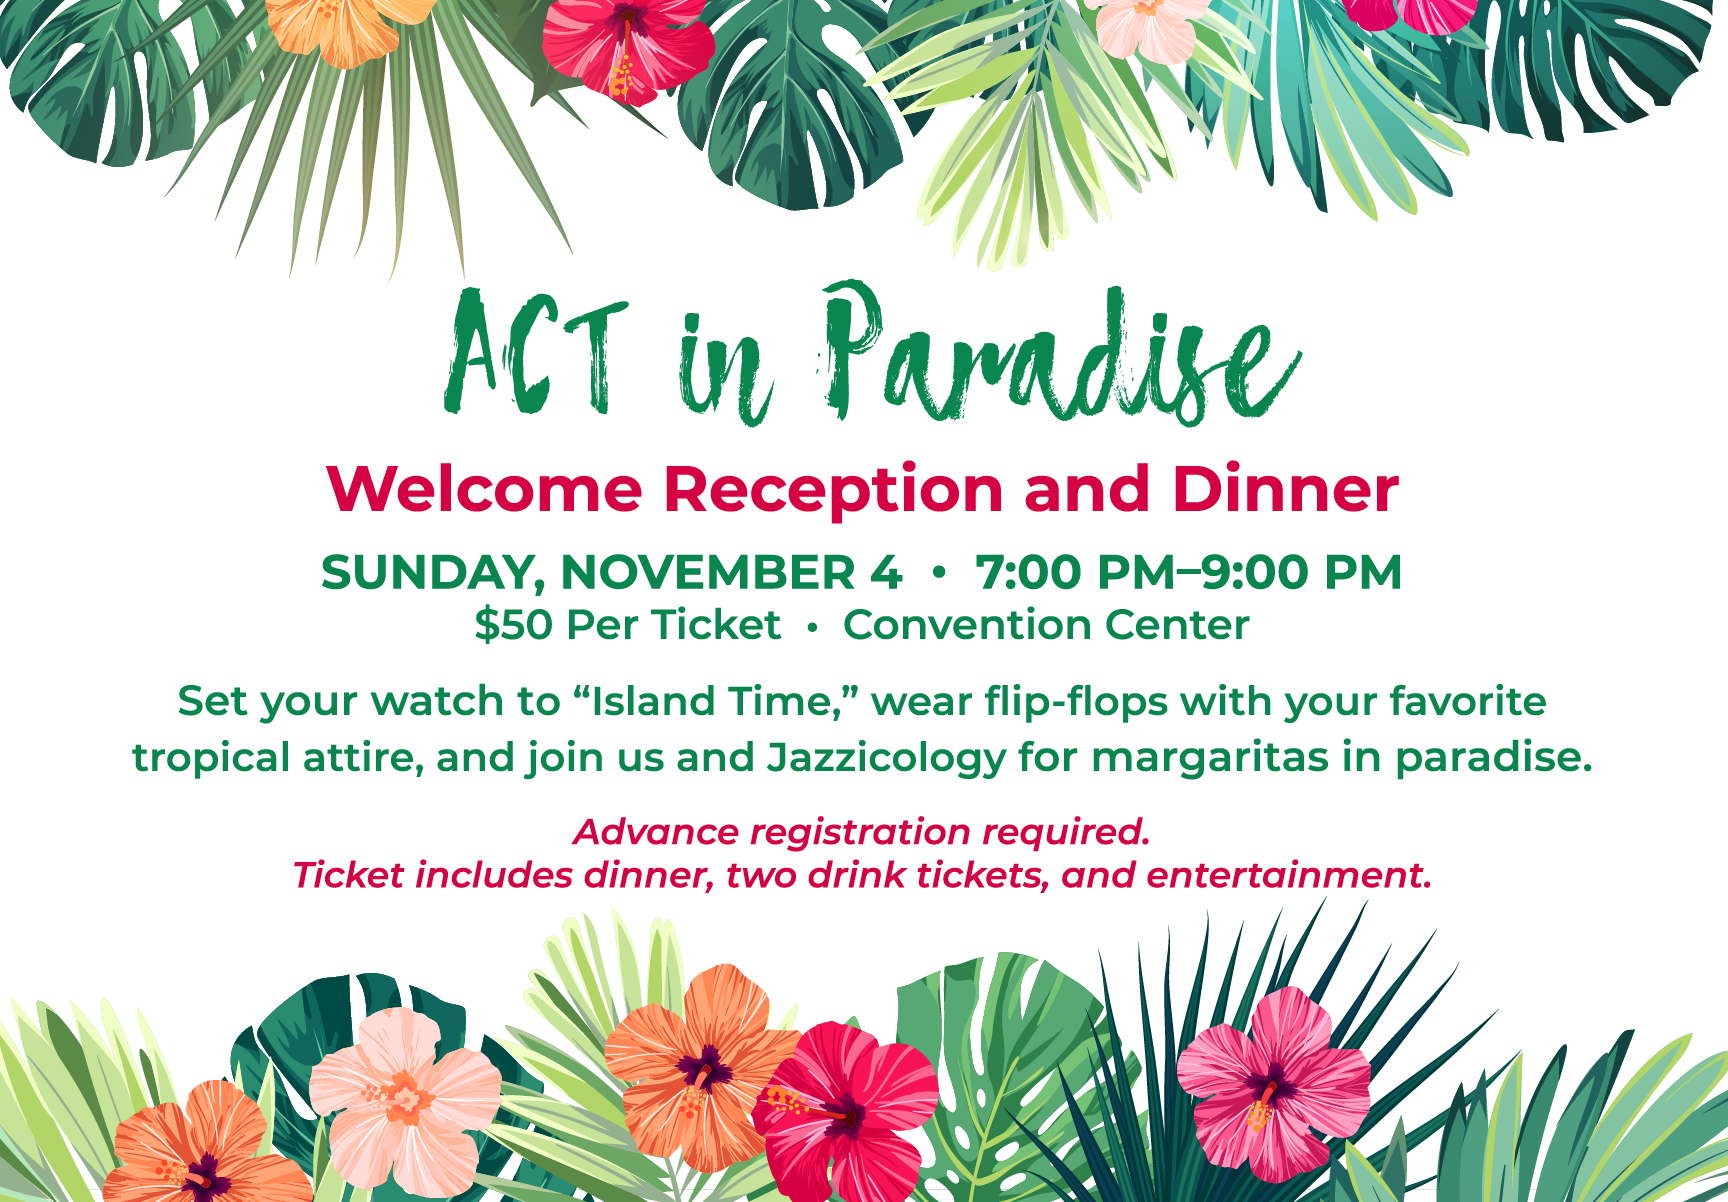 ACT in Paradise - Welcome Reception and Dinner - Sunday, November 4,